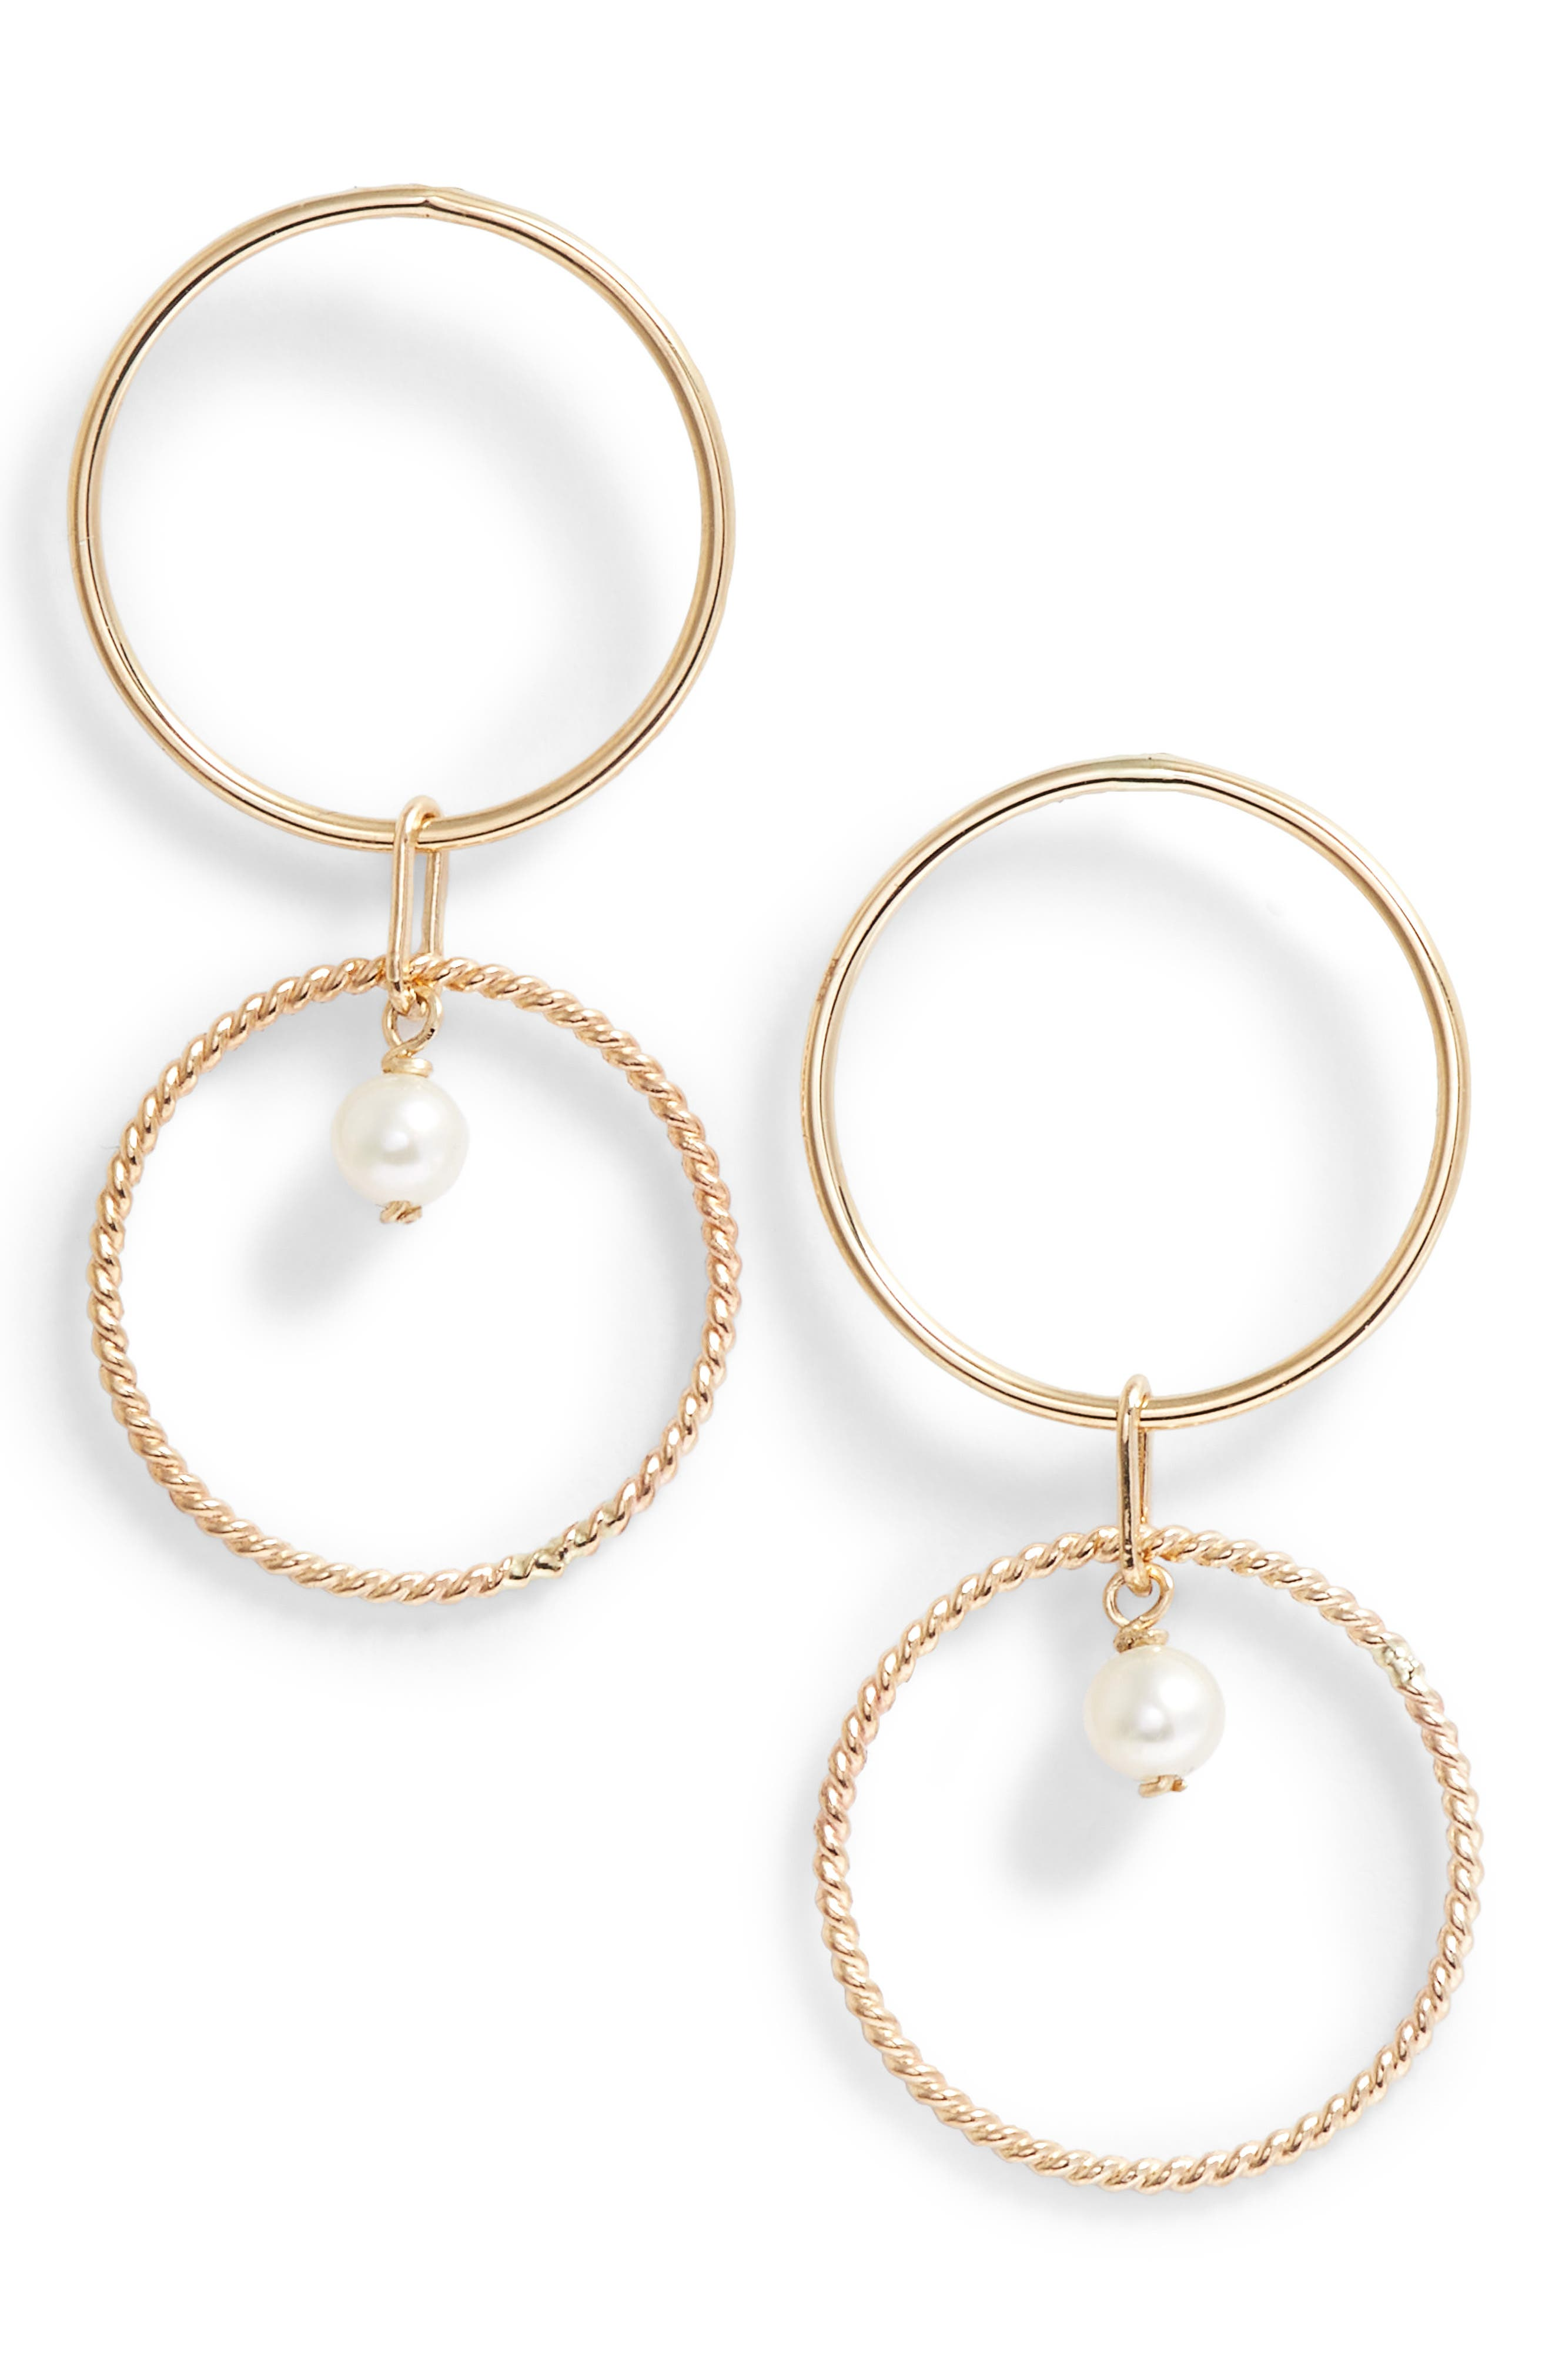 Pearl Double Hoop Earrings,                         Main,                         color, YELLOW GOLD/ WHITE PEARL